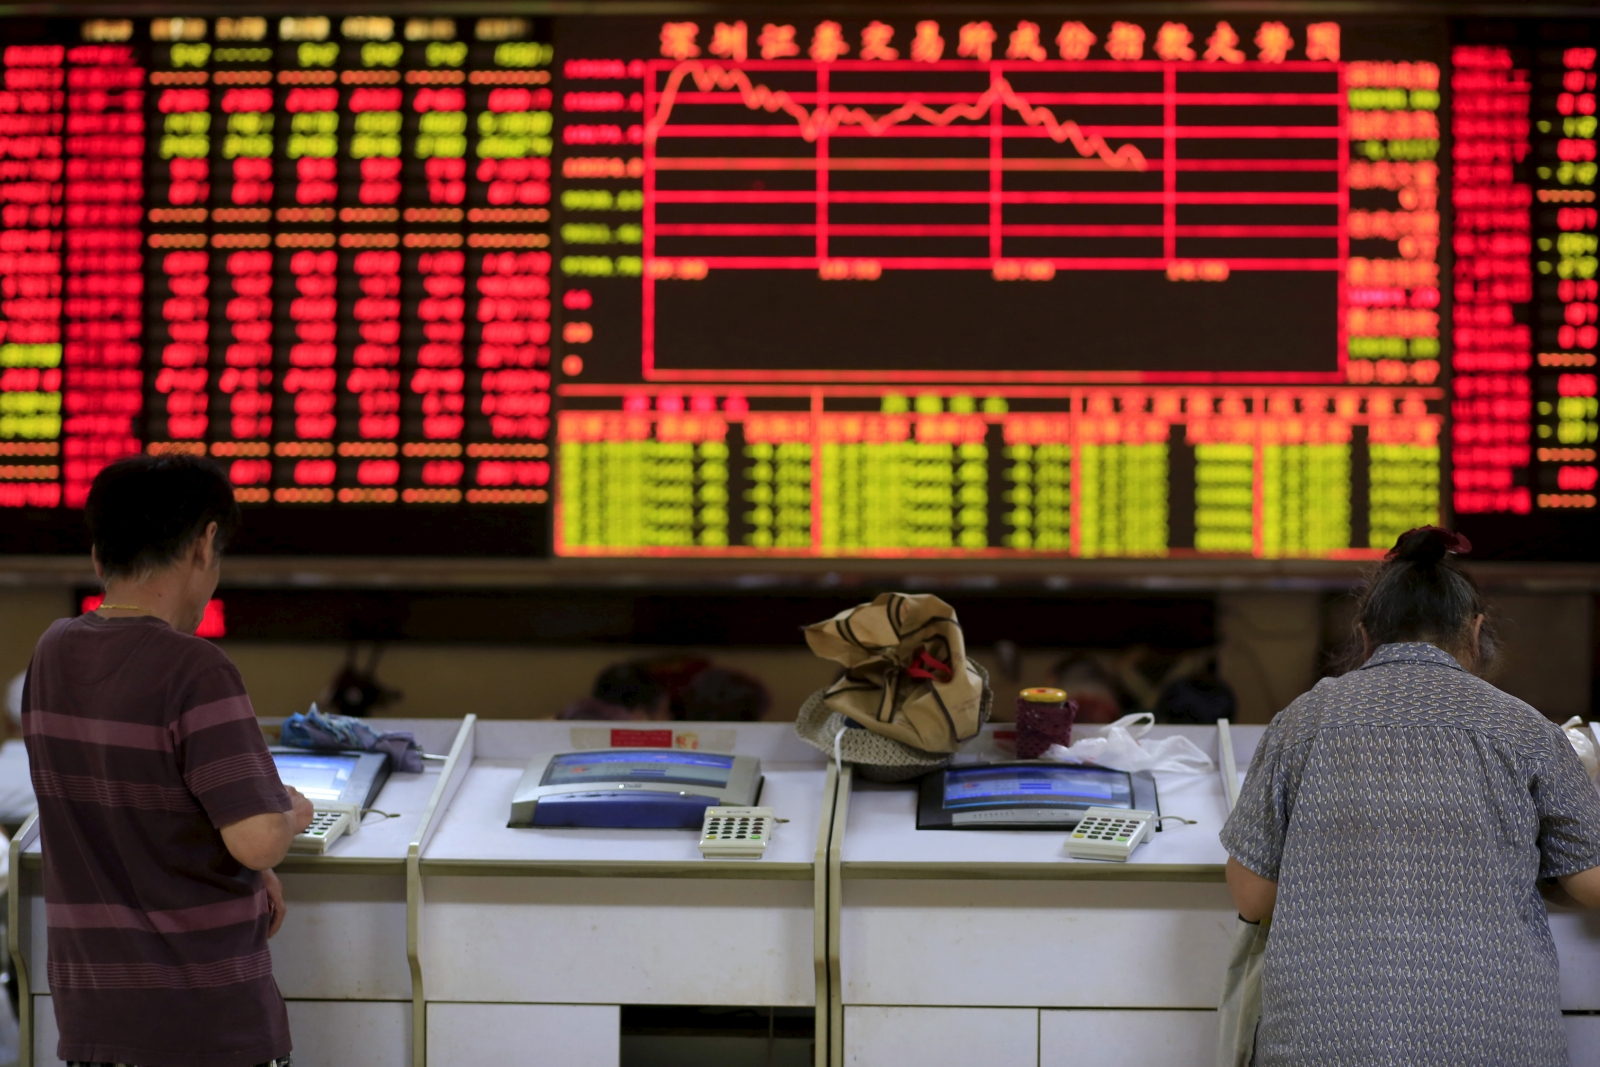 Asian markets: Shanghai Composite slips despite MSCI's decision not to include Chinese equities in its indexes